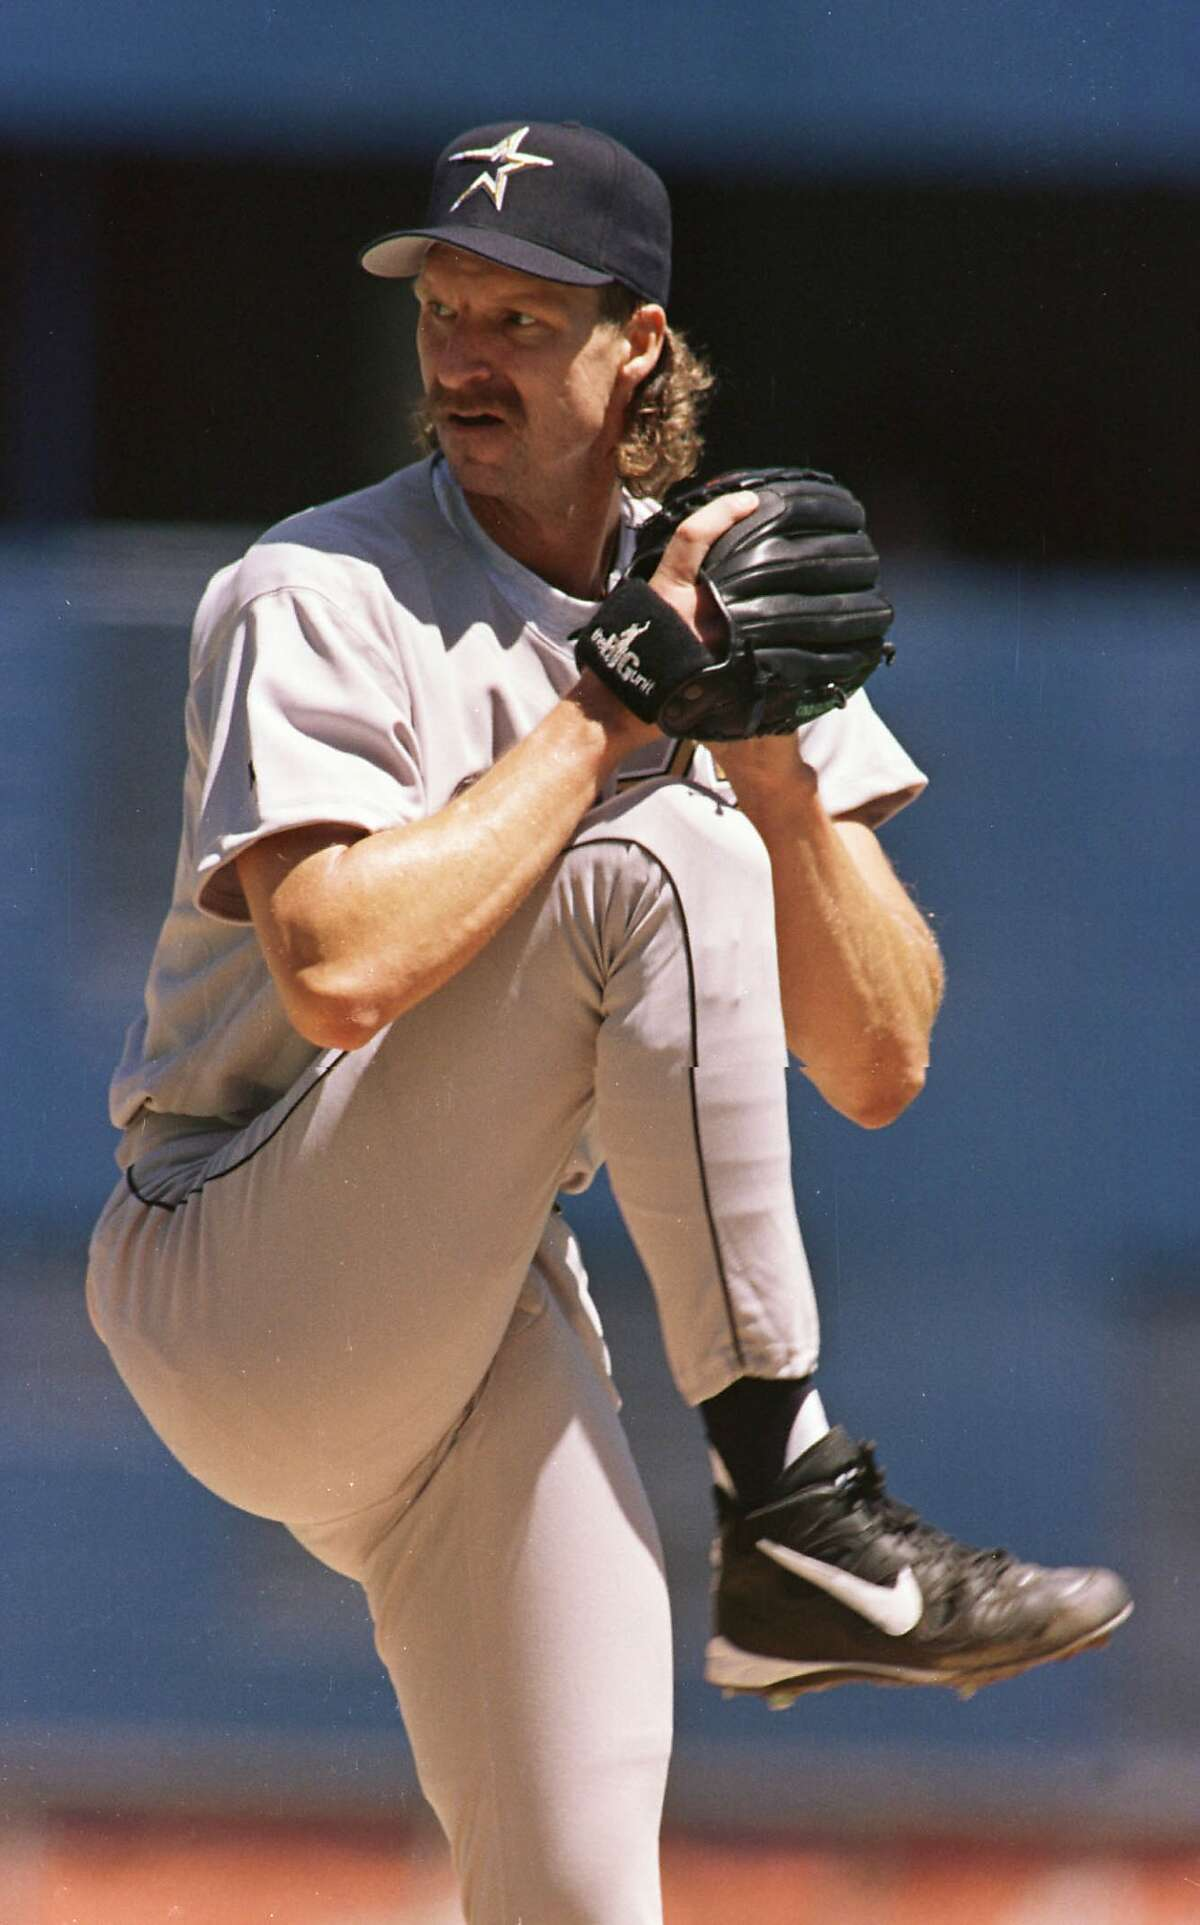 Randy Johnson, but it's one foot tall to show his grandeur